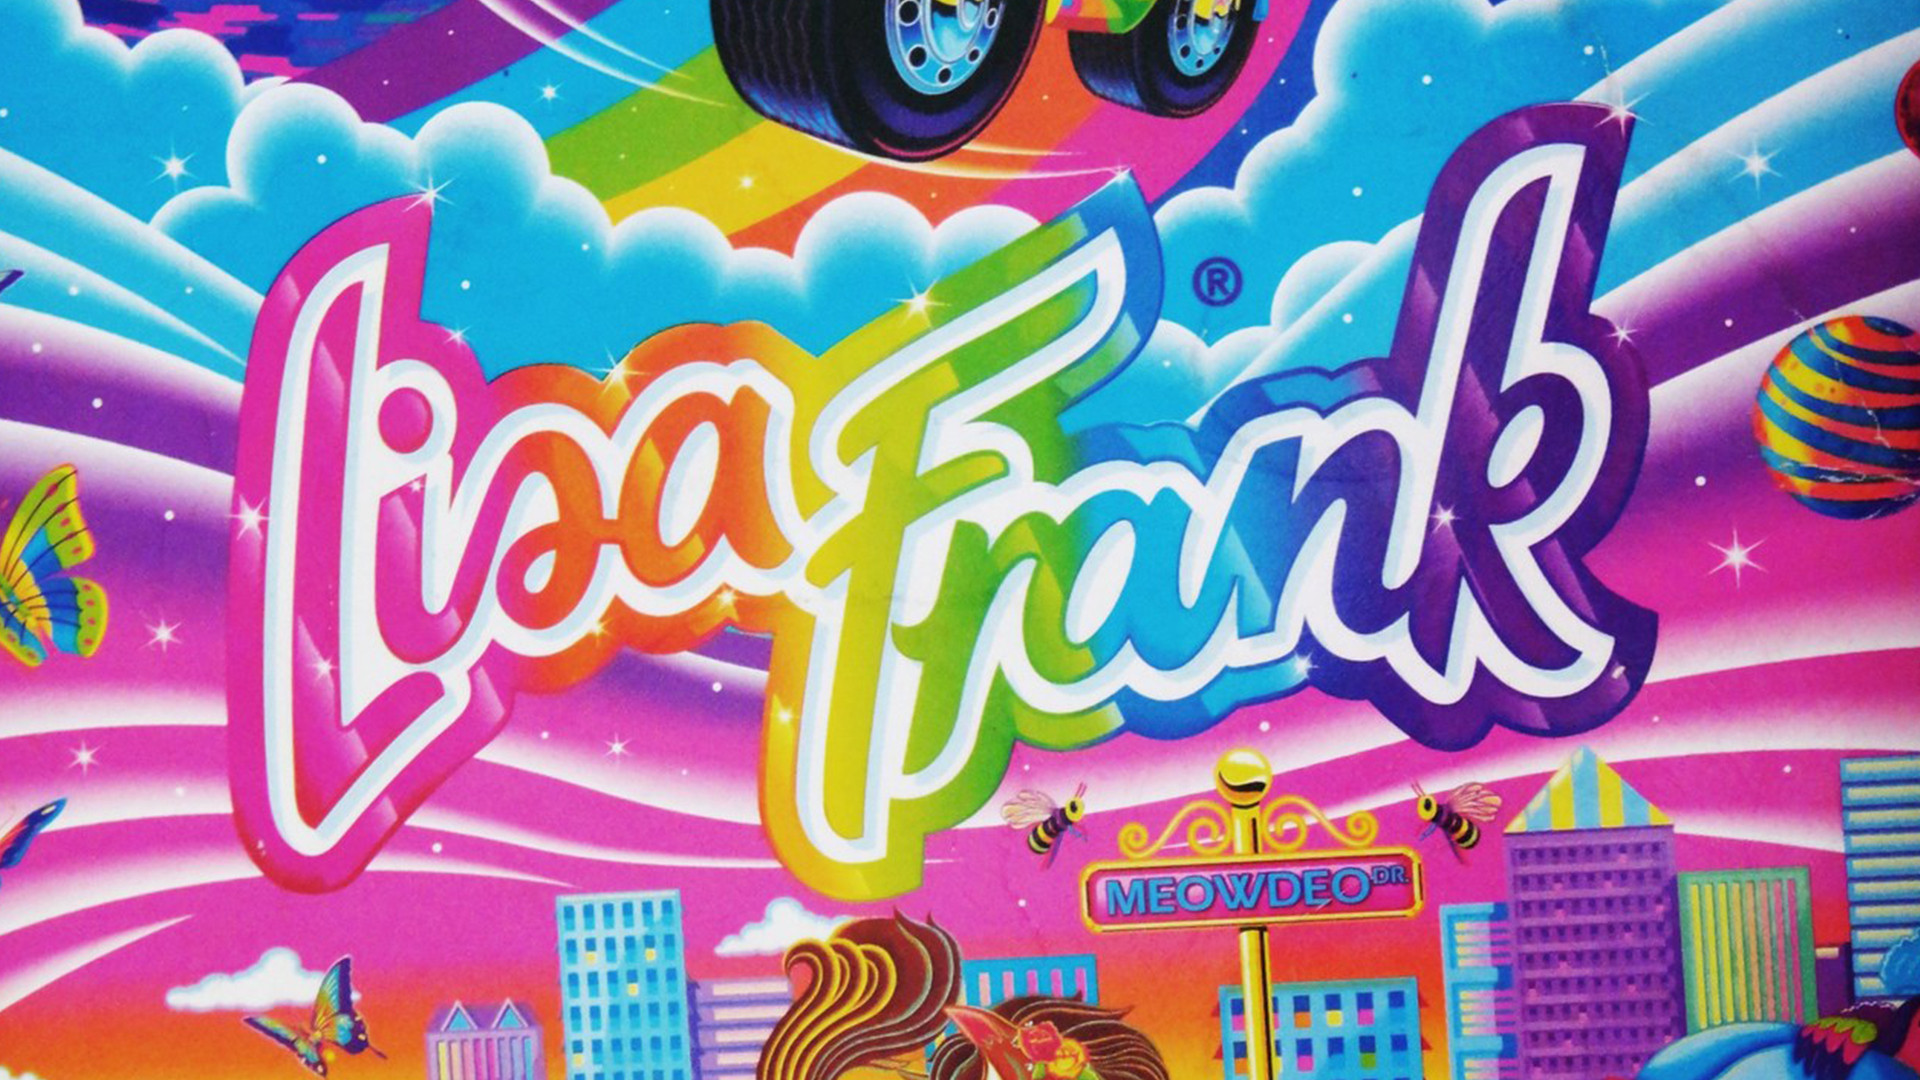 lisa frank wallpaper wallpapersafari